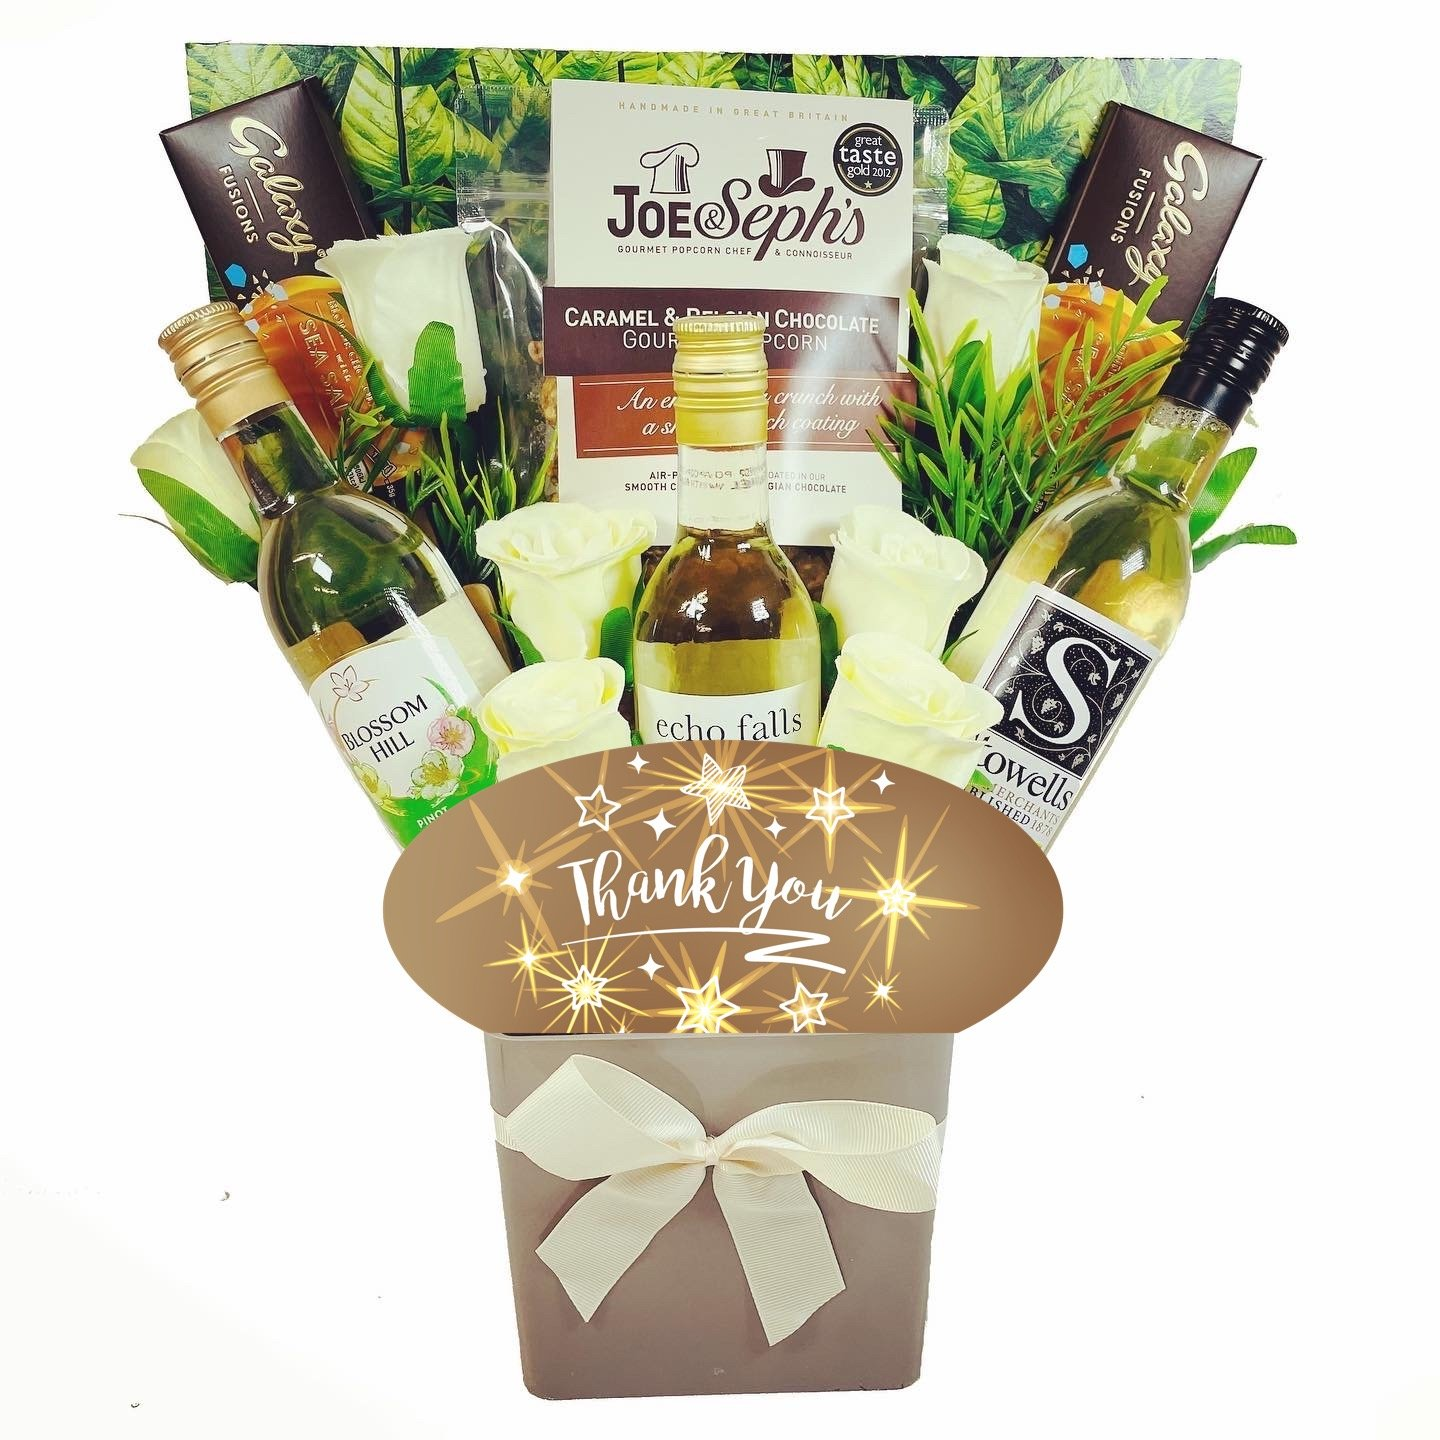 The Thank You White Wine & Chocolates Bouquet